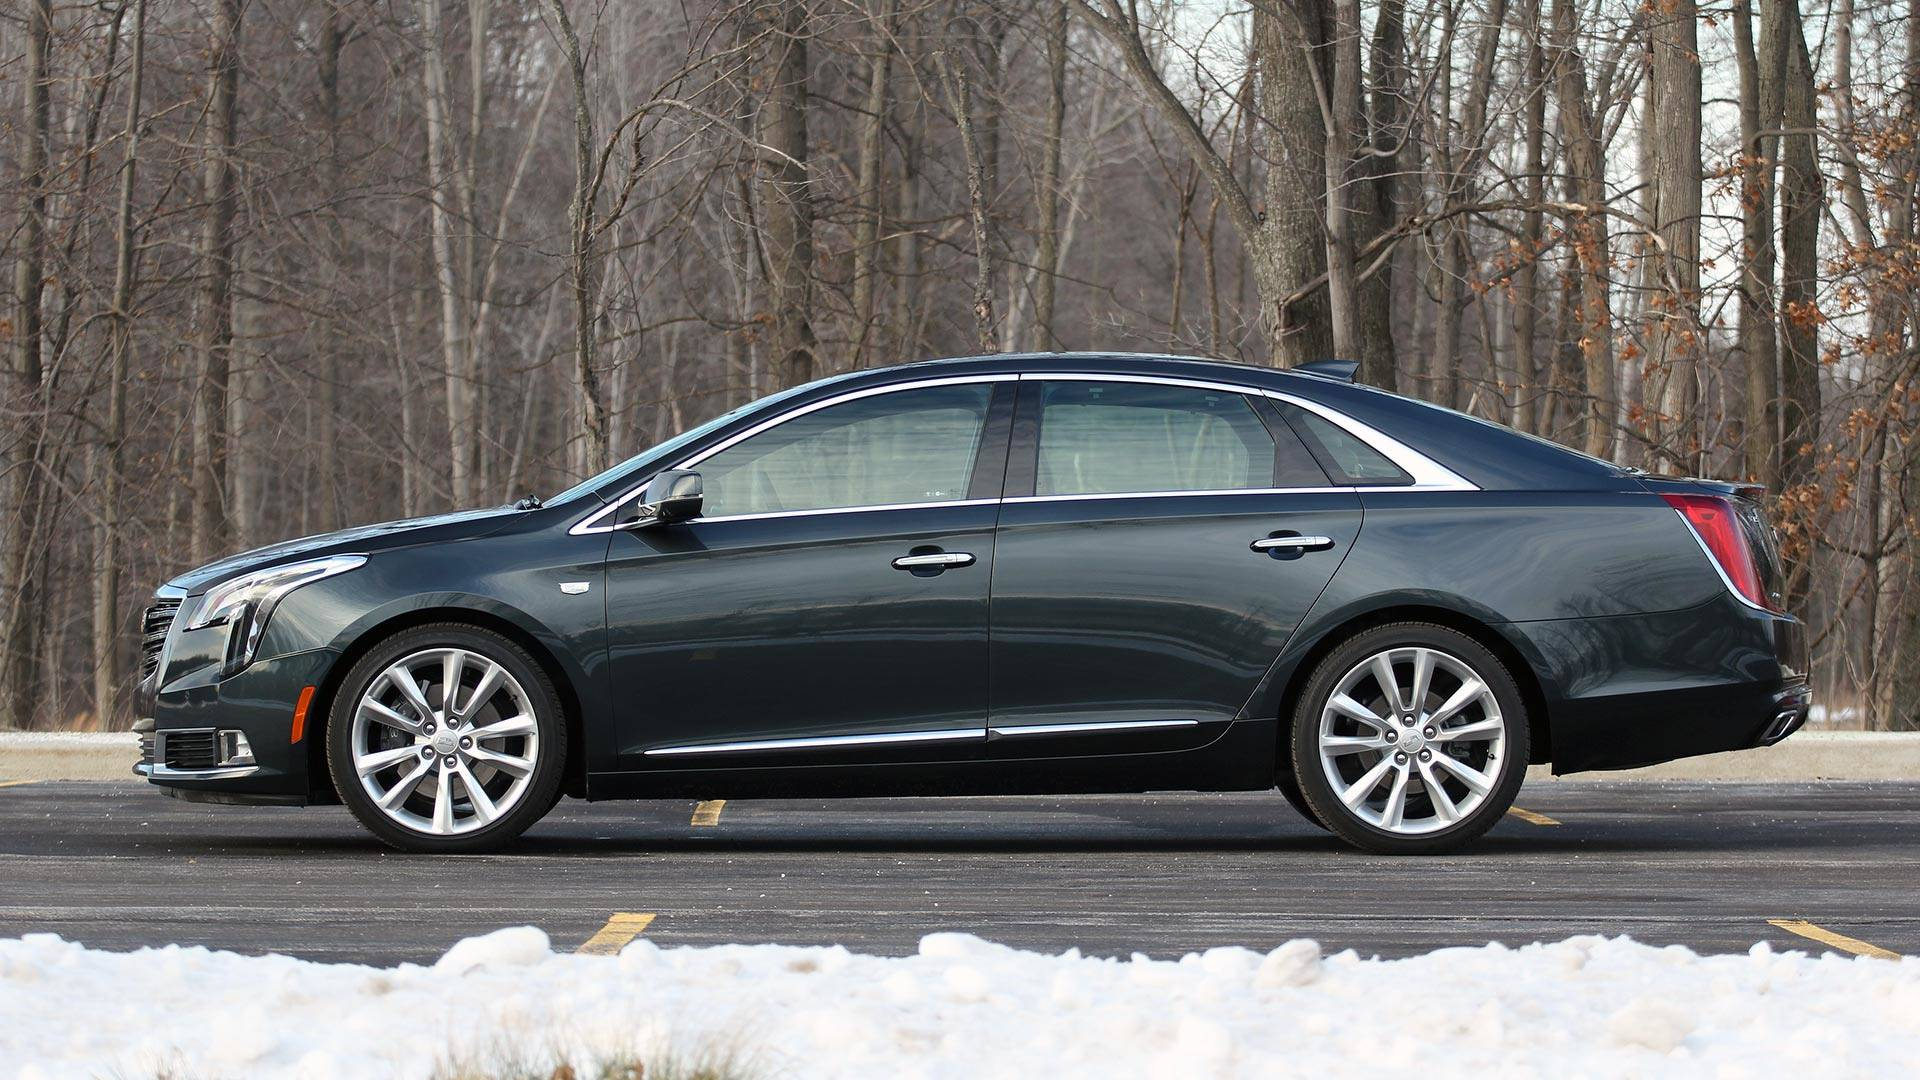 luxury cadillac xts hx right the on sport sedan of motortrend twitter out test in trend hp motor here v status dd is quick first find how